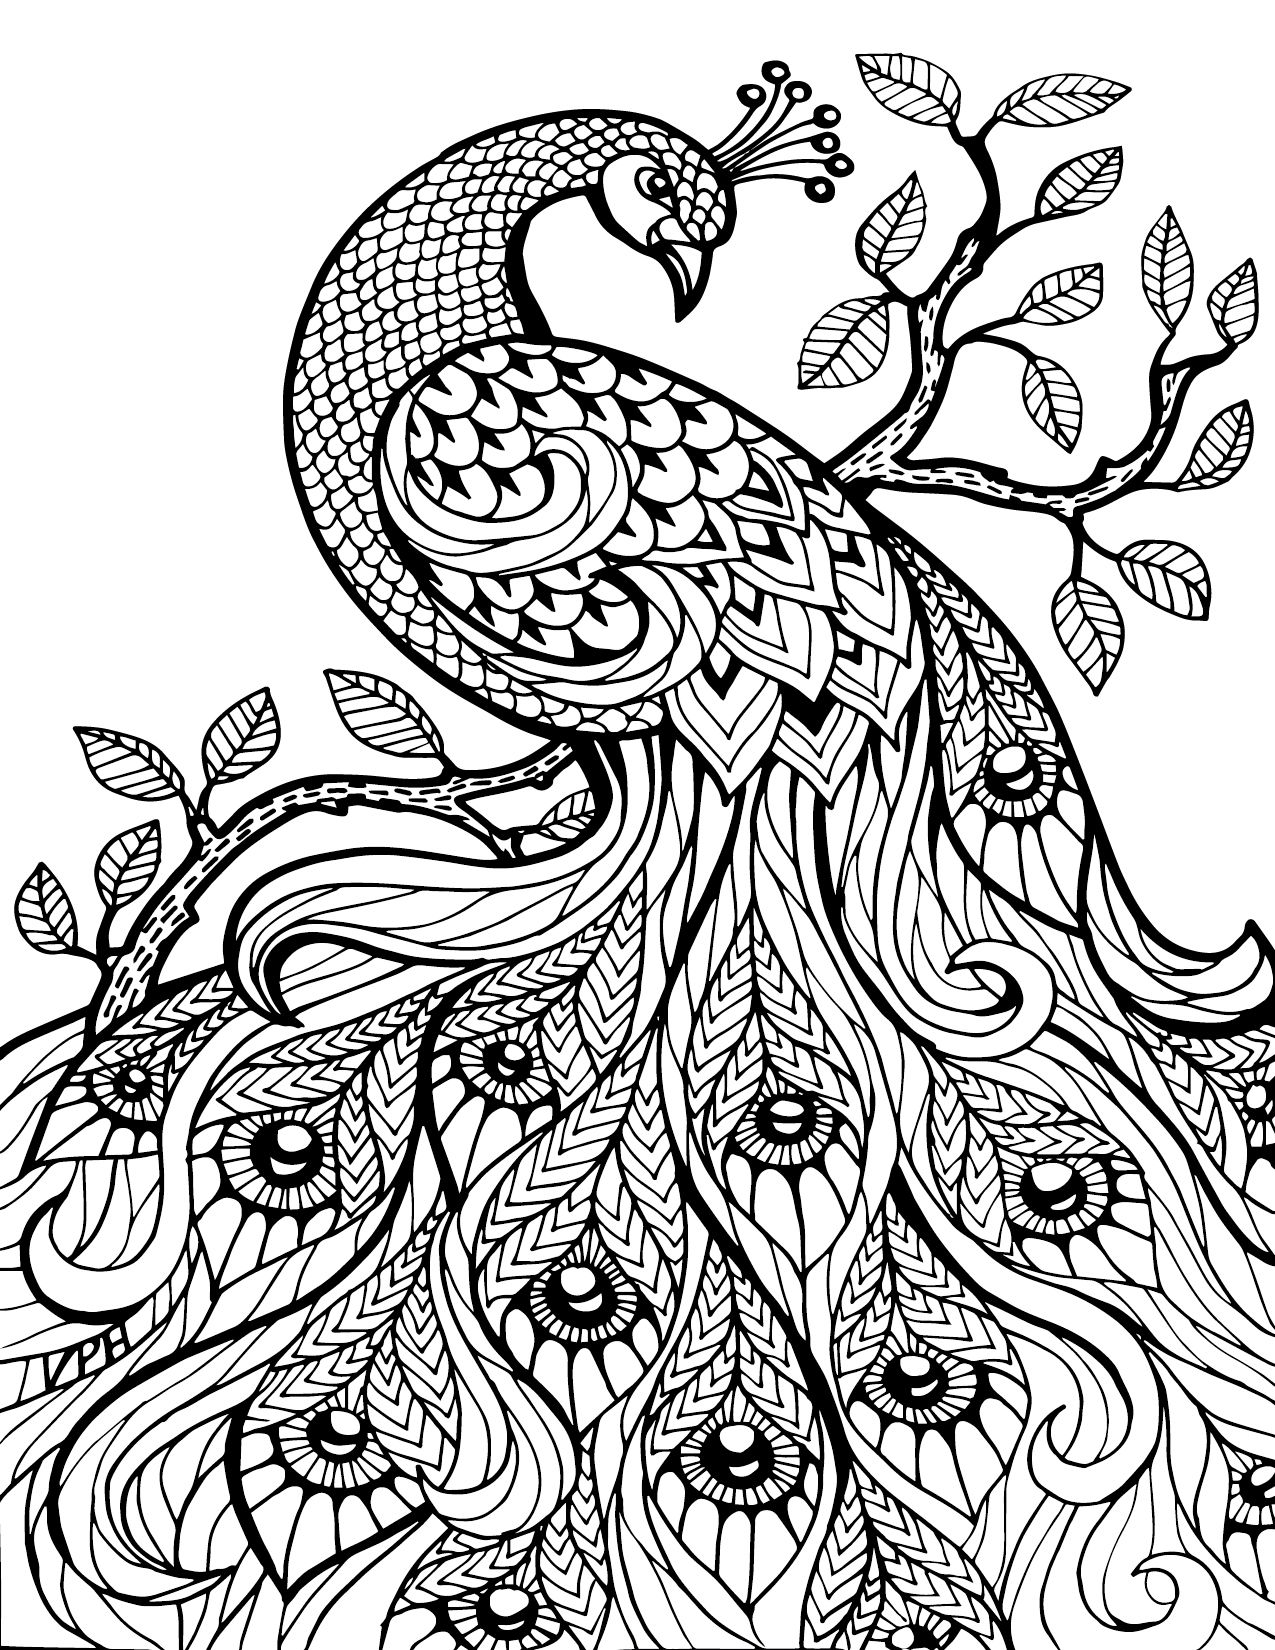 Free printable coloring pages for grown ups - Free Printable Coloring Pages For Adults Only Image 36 Art Davlin Publishing